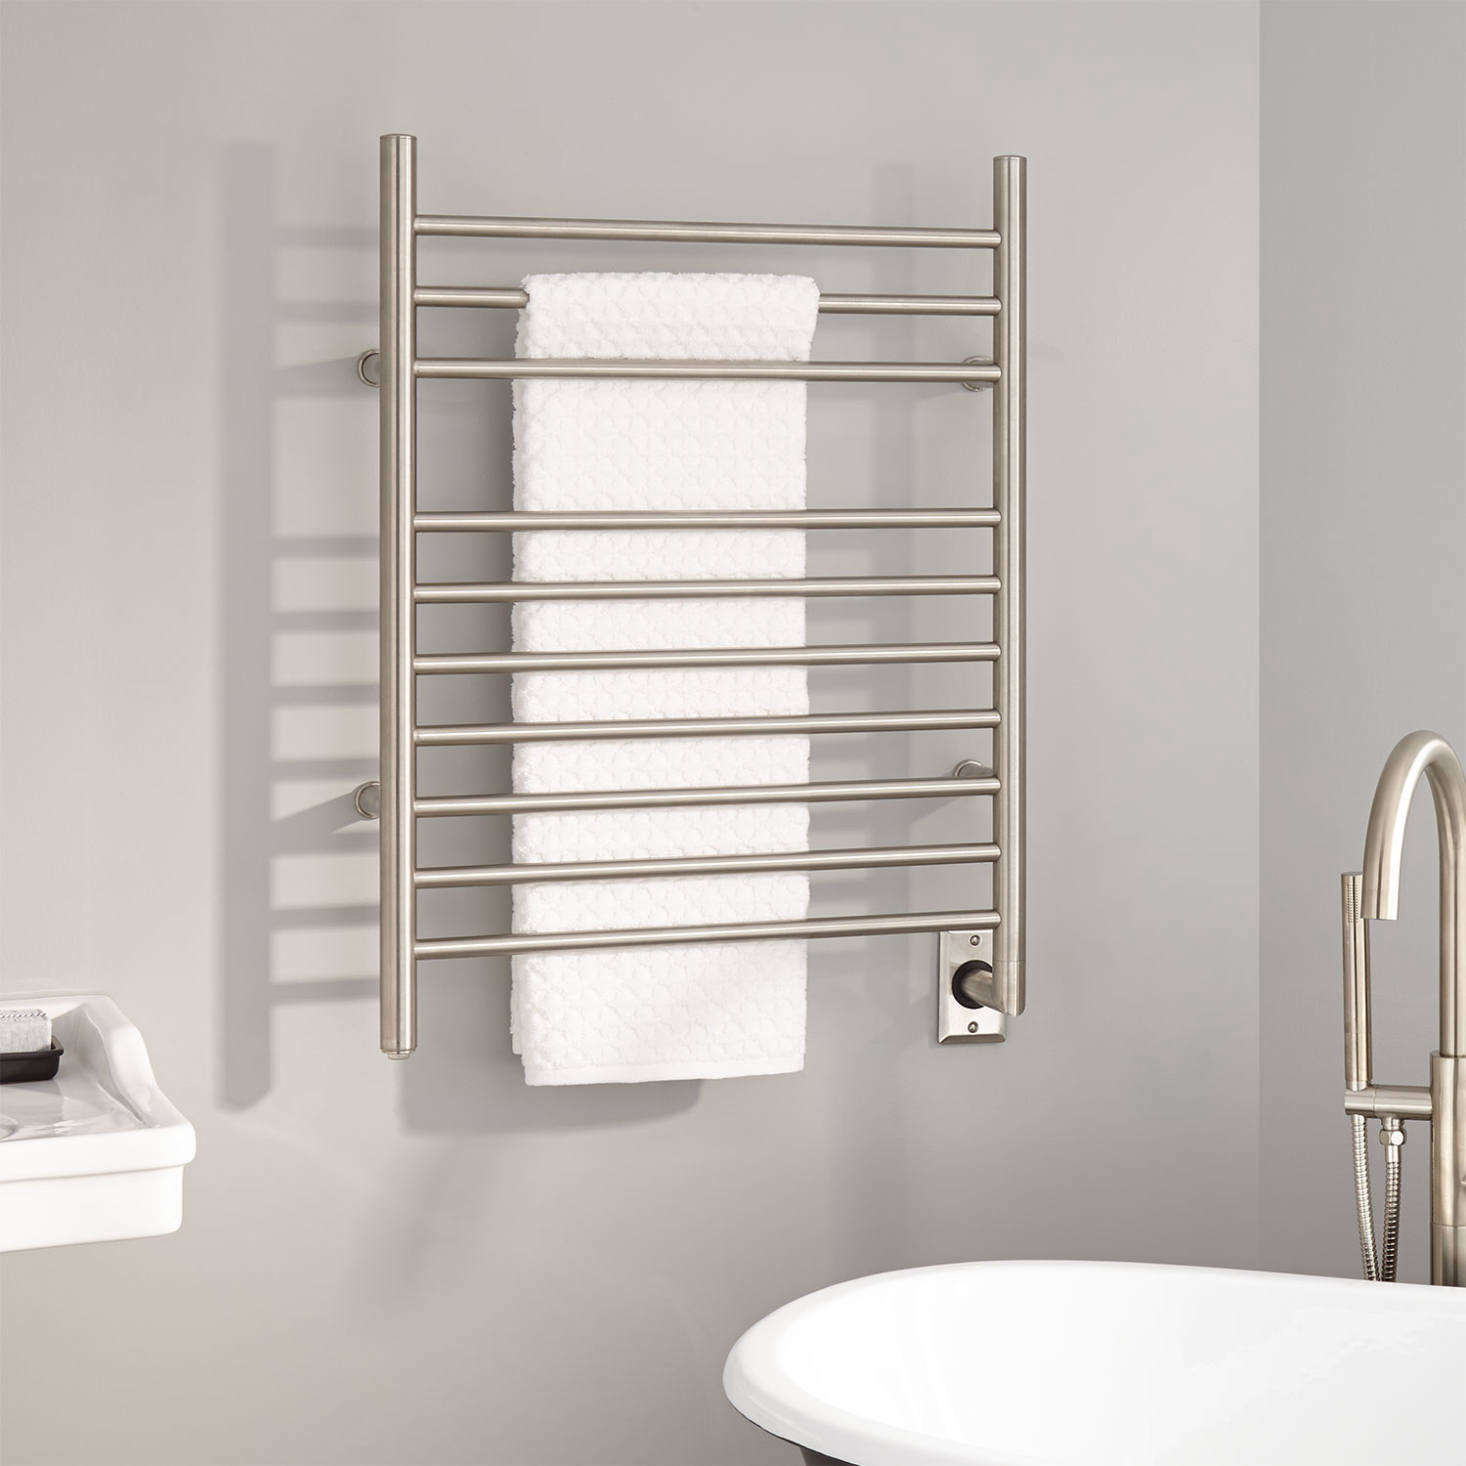 The 24-Inch Contemporary Hardwired Towel Warmer is currently on sale for $92.99 at Signature Hardware.